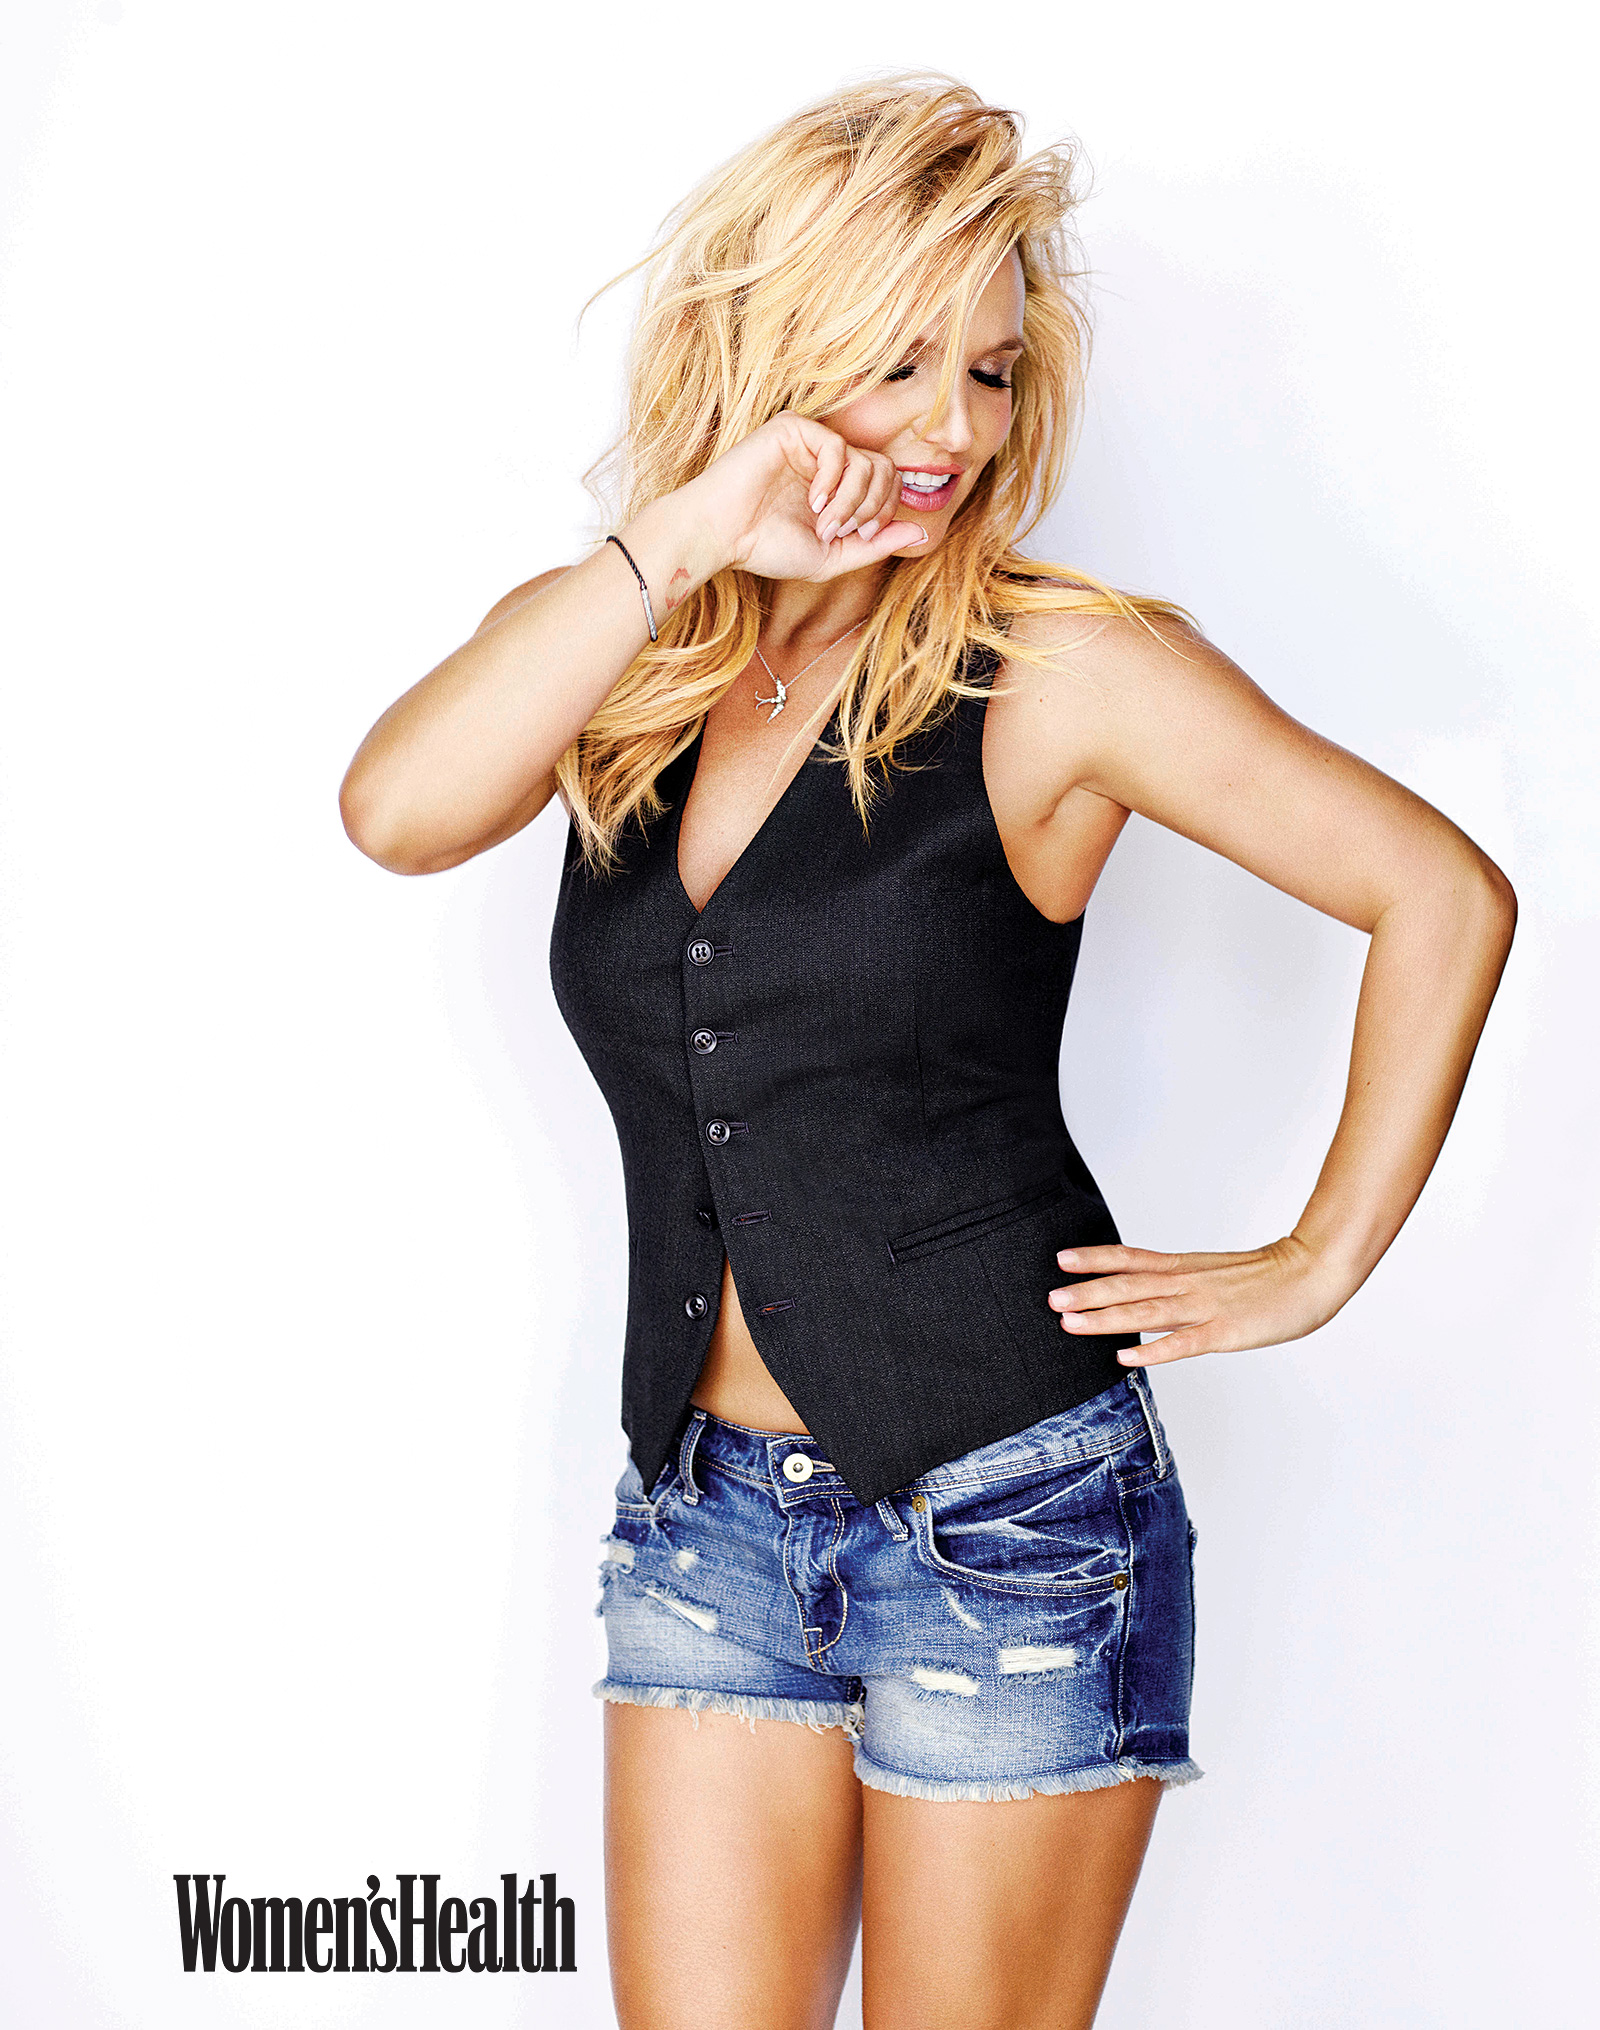 star24-tv-britney-spears-women's-health-couverture-magazine (4)